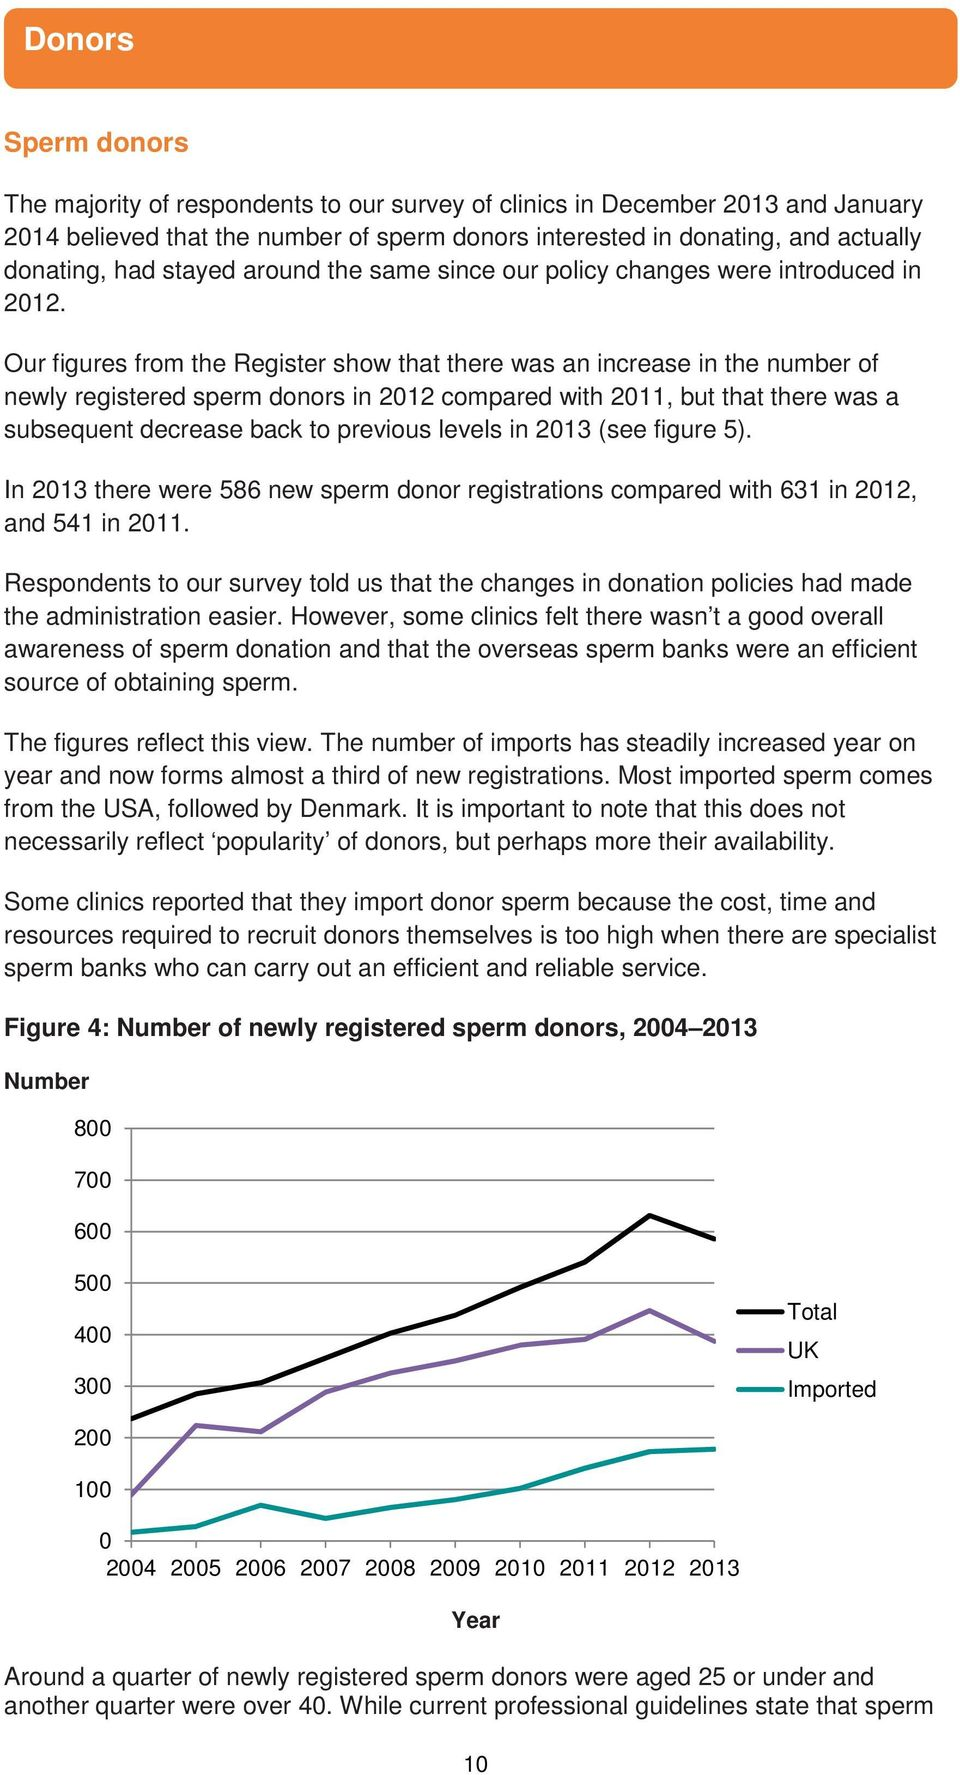 Our figures from the Register show that there was an increase in the number of newly registered sperm donors in 2012 compared with 2011, but that there was a subsequent decrease back to previous